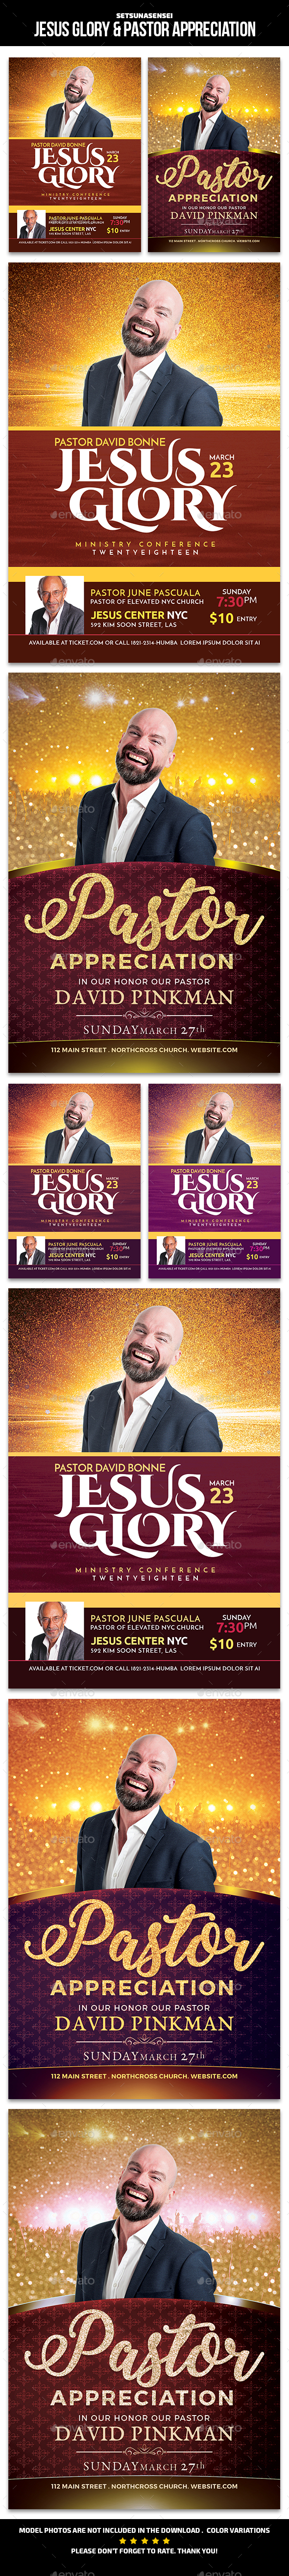 Jesus Glory & Pastor Appreciation Church Flyer - Church Flyers